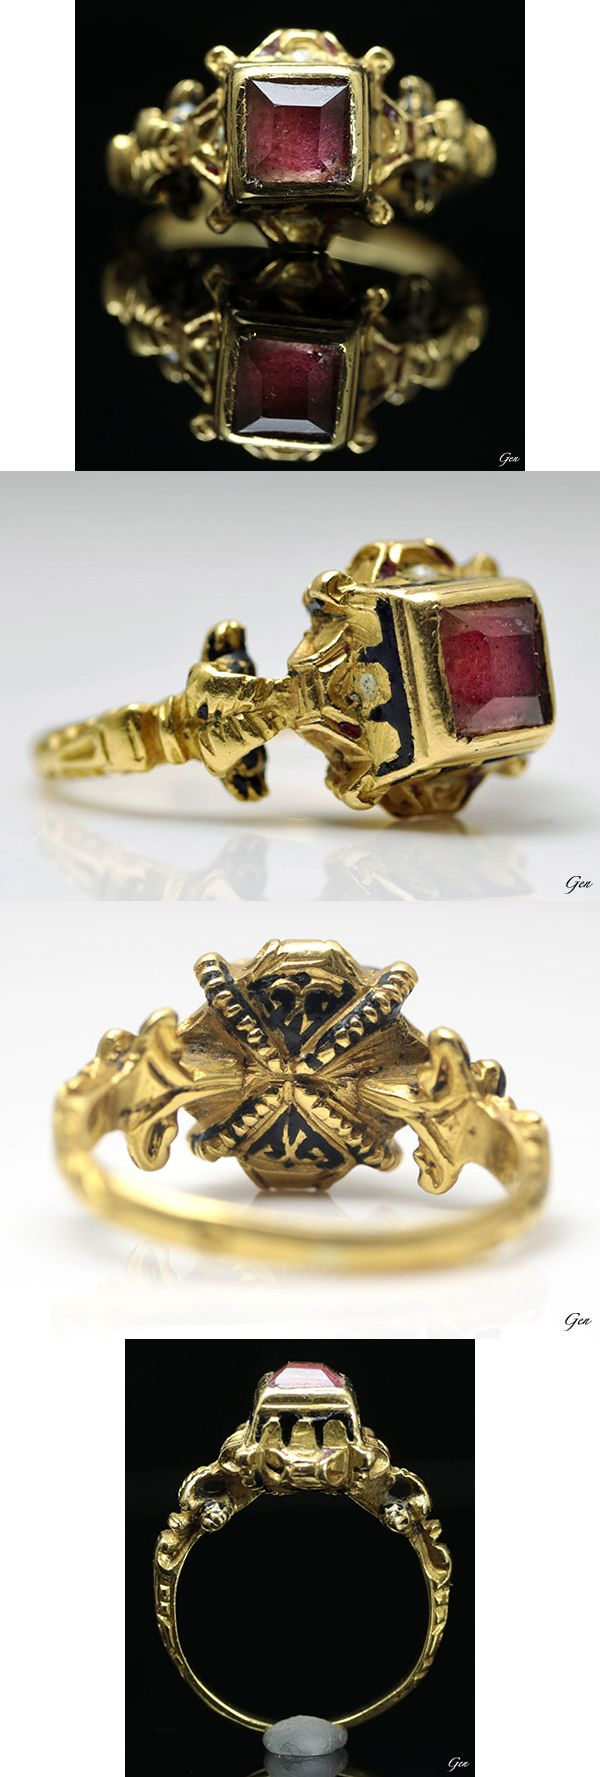 Renaissance table-cut rock crystal ring, Italy, ca. 1550, rock crystal, high carat gold (about 22k), enamel, bezel length 1 × 1cm, height 8mm, 5.7g, The ring is embellished with a pink-red colored foil backing.